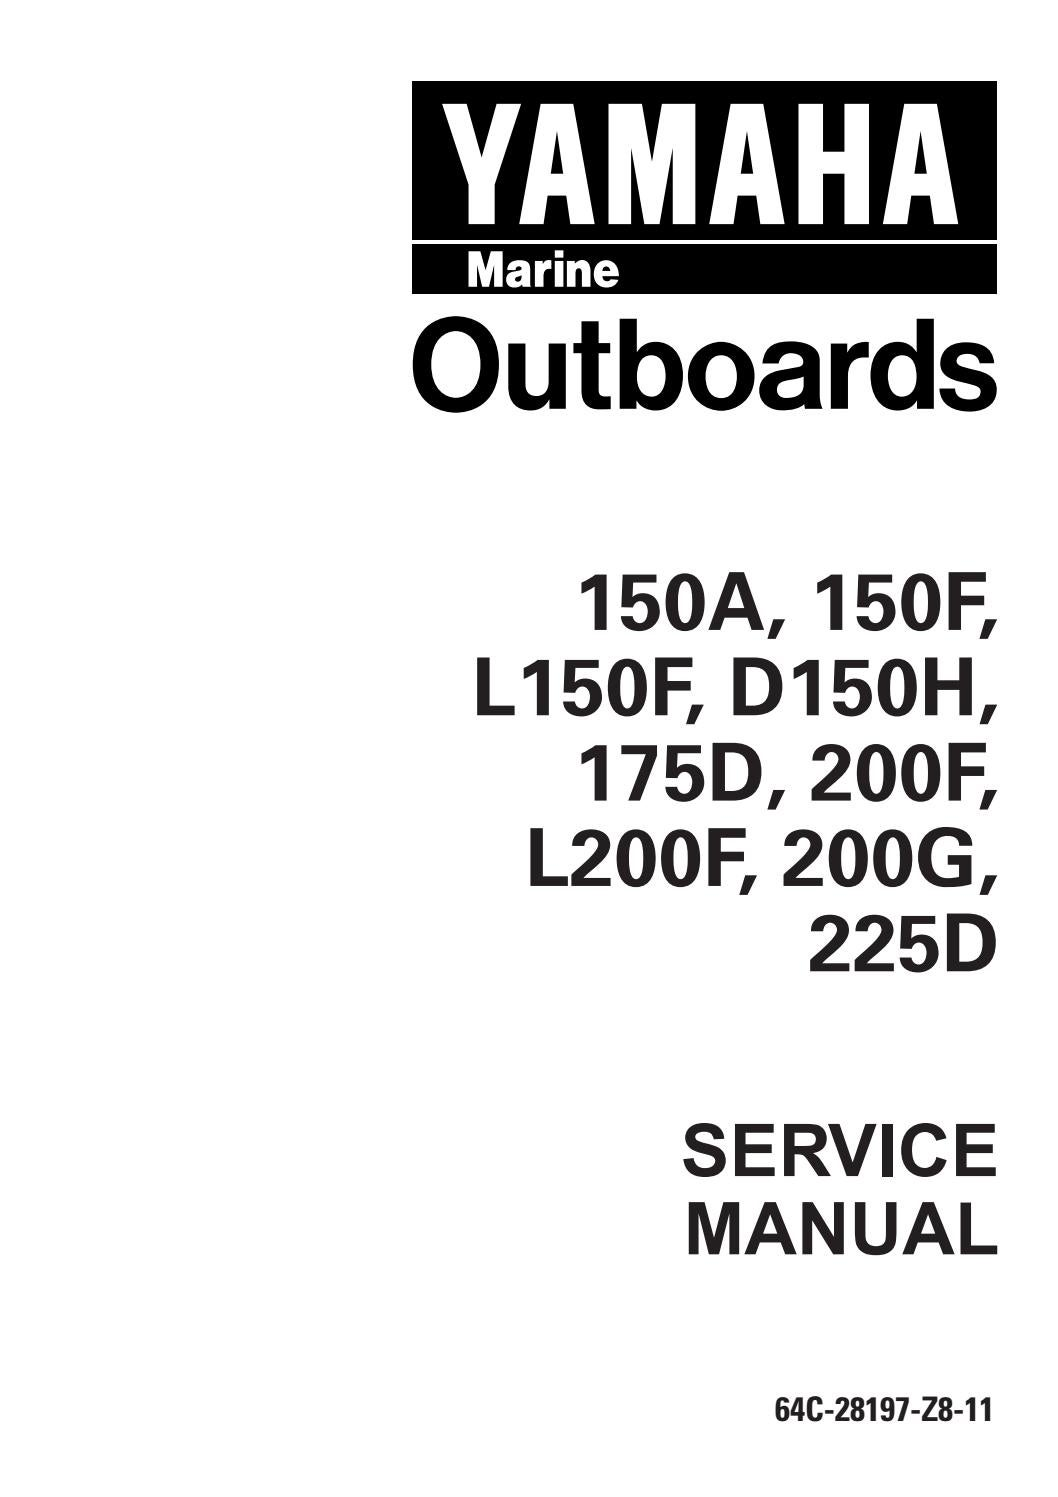 Yamaha l200aet outboard service repair manual x 752202 by